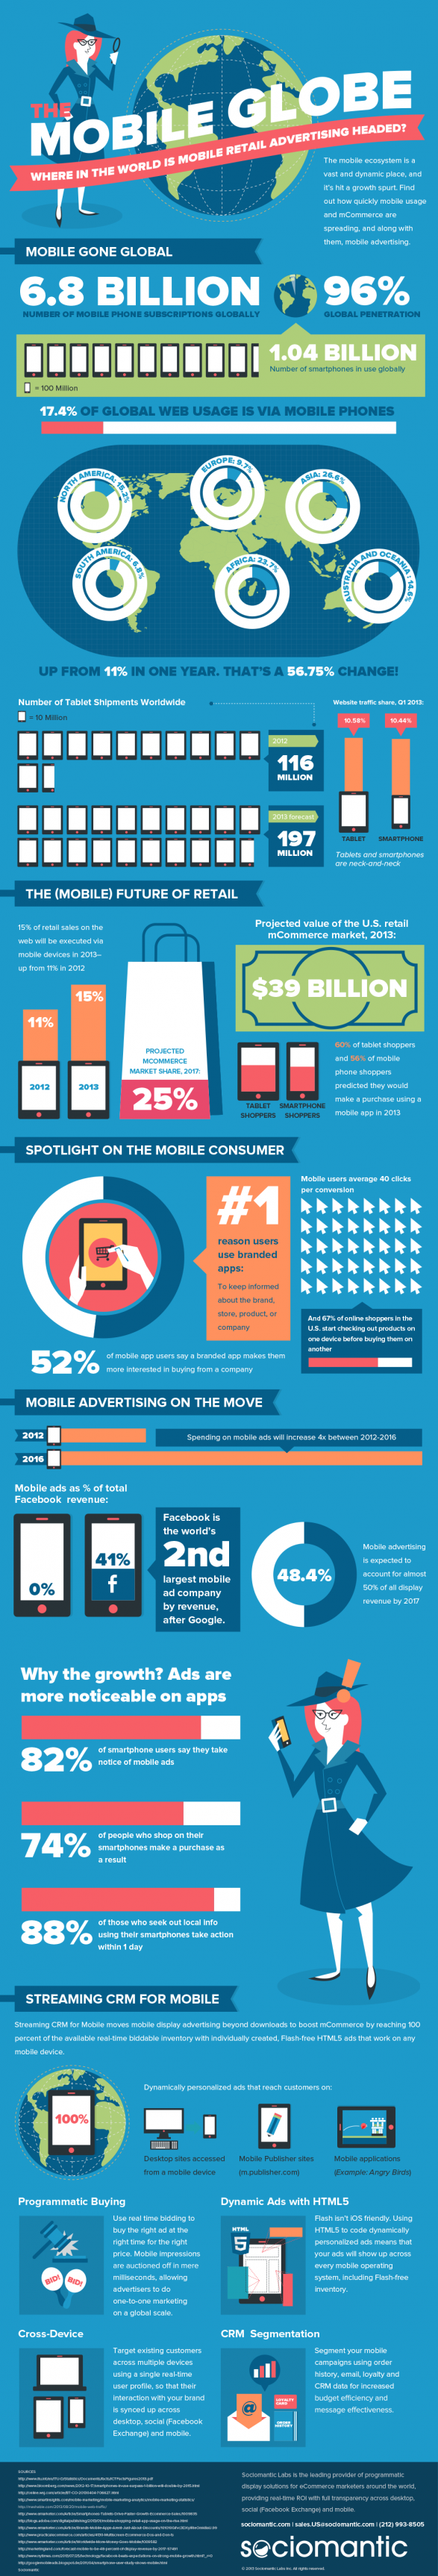 The Mobile Globe: Where in the World is Mobile Retail Advertising Headed?